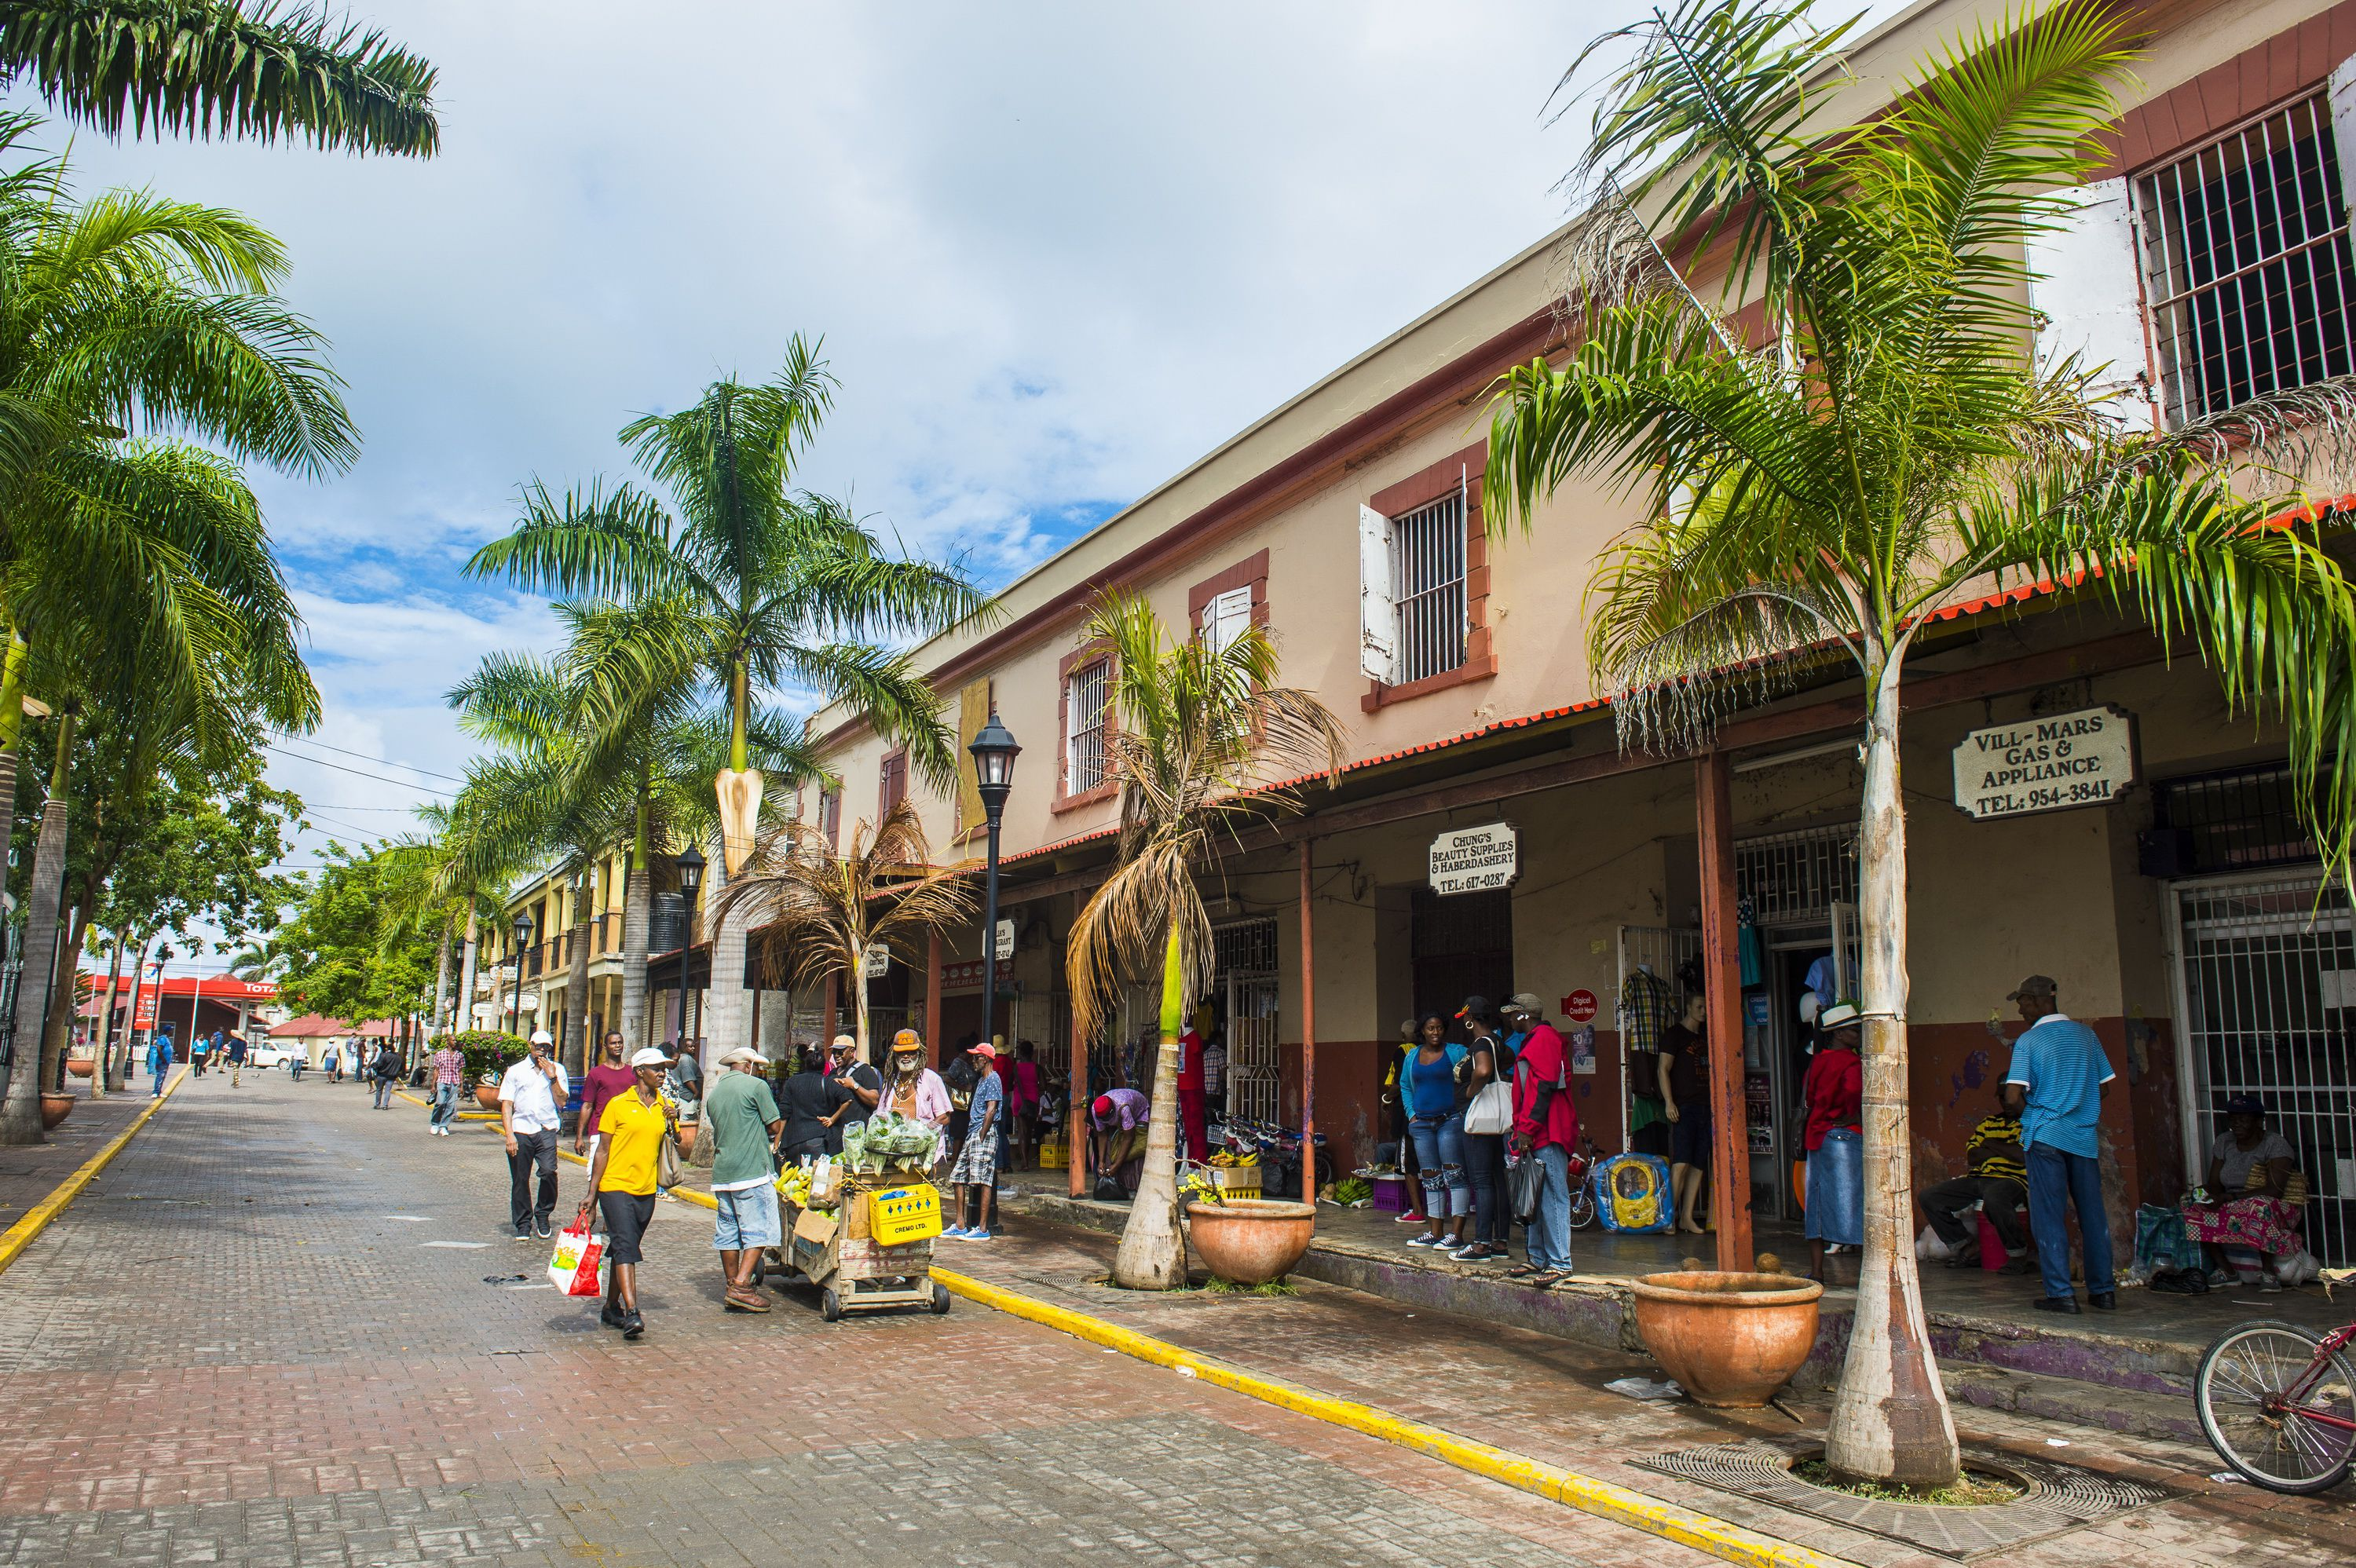 Shop-lined street in Falmouth, Jamaica